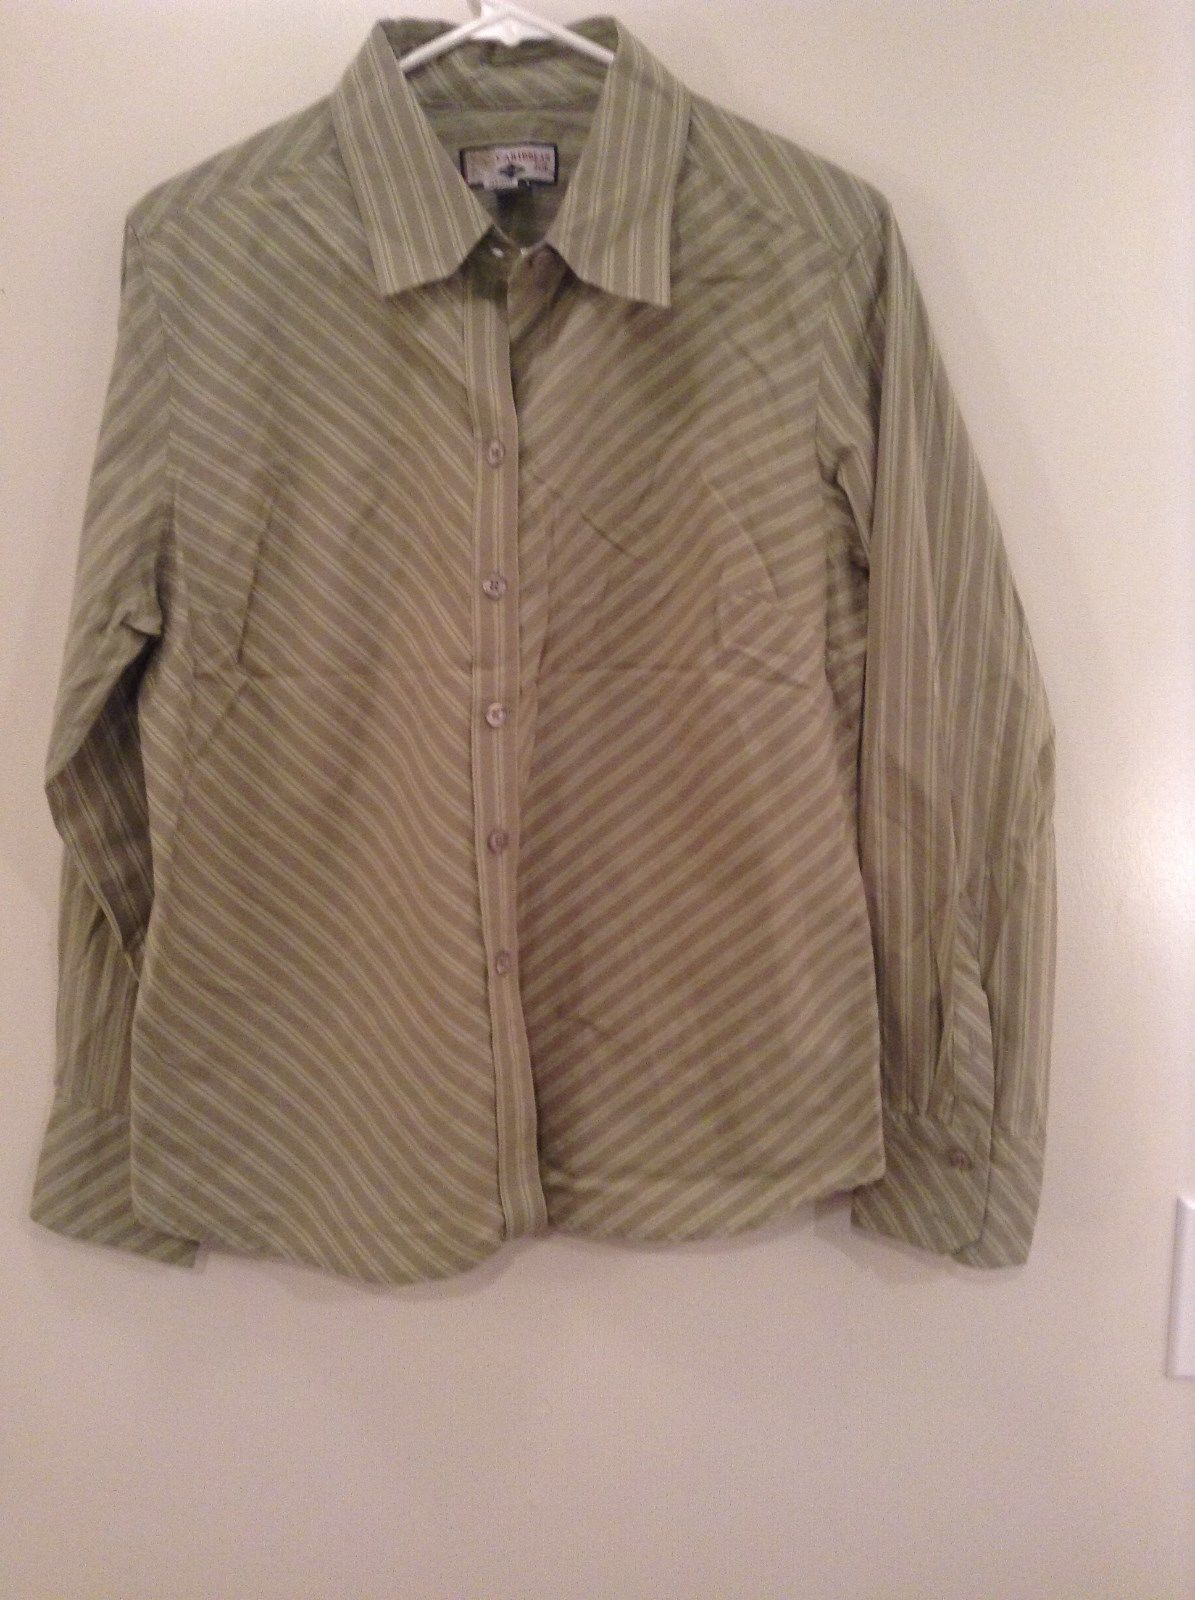 Very Nice Green Striped Button Up Long Sleeve Shirt Carribean Joe Size Large